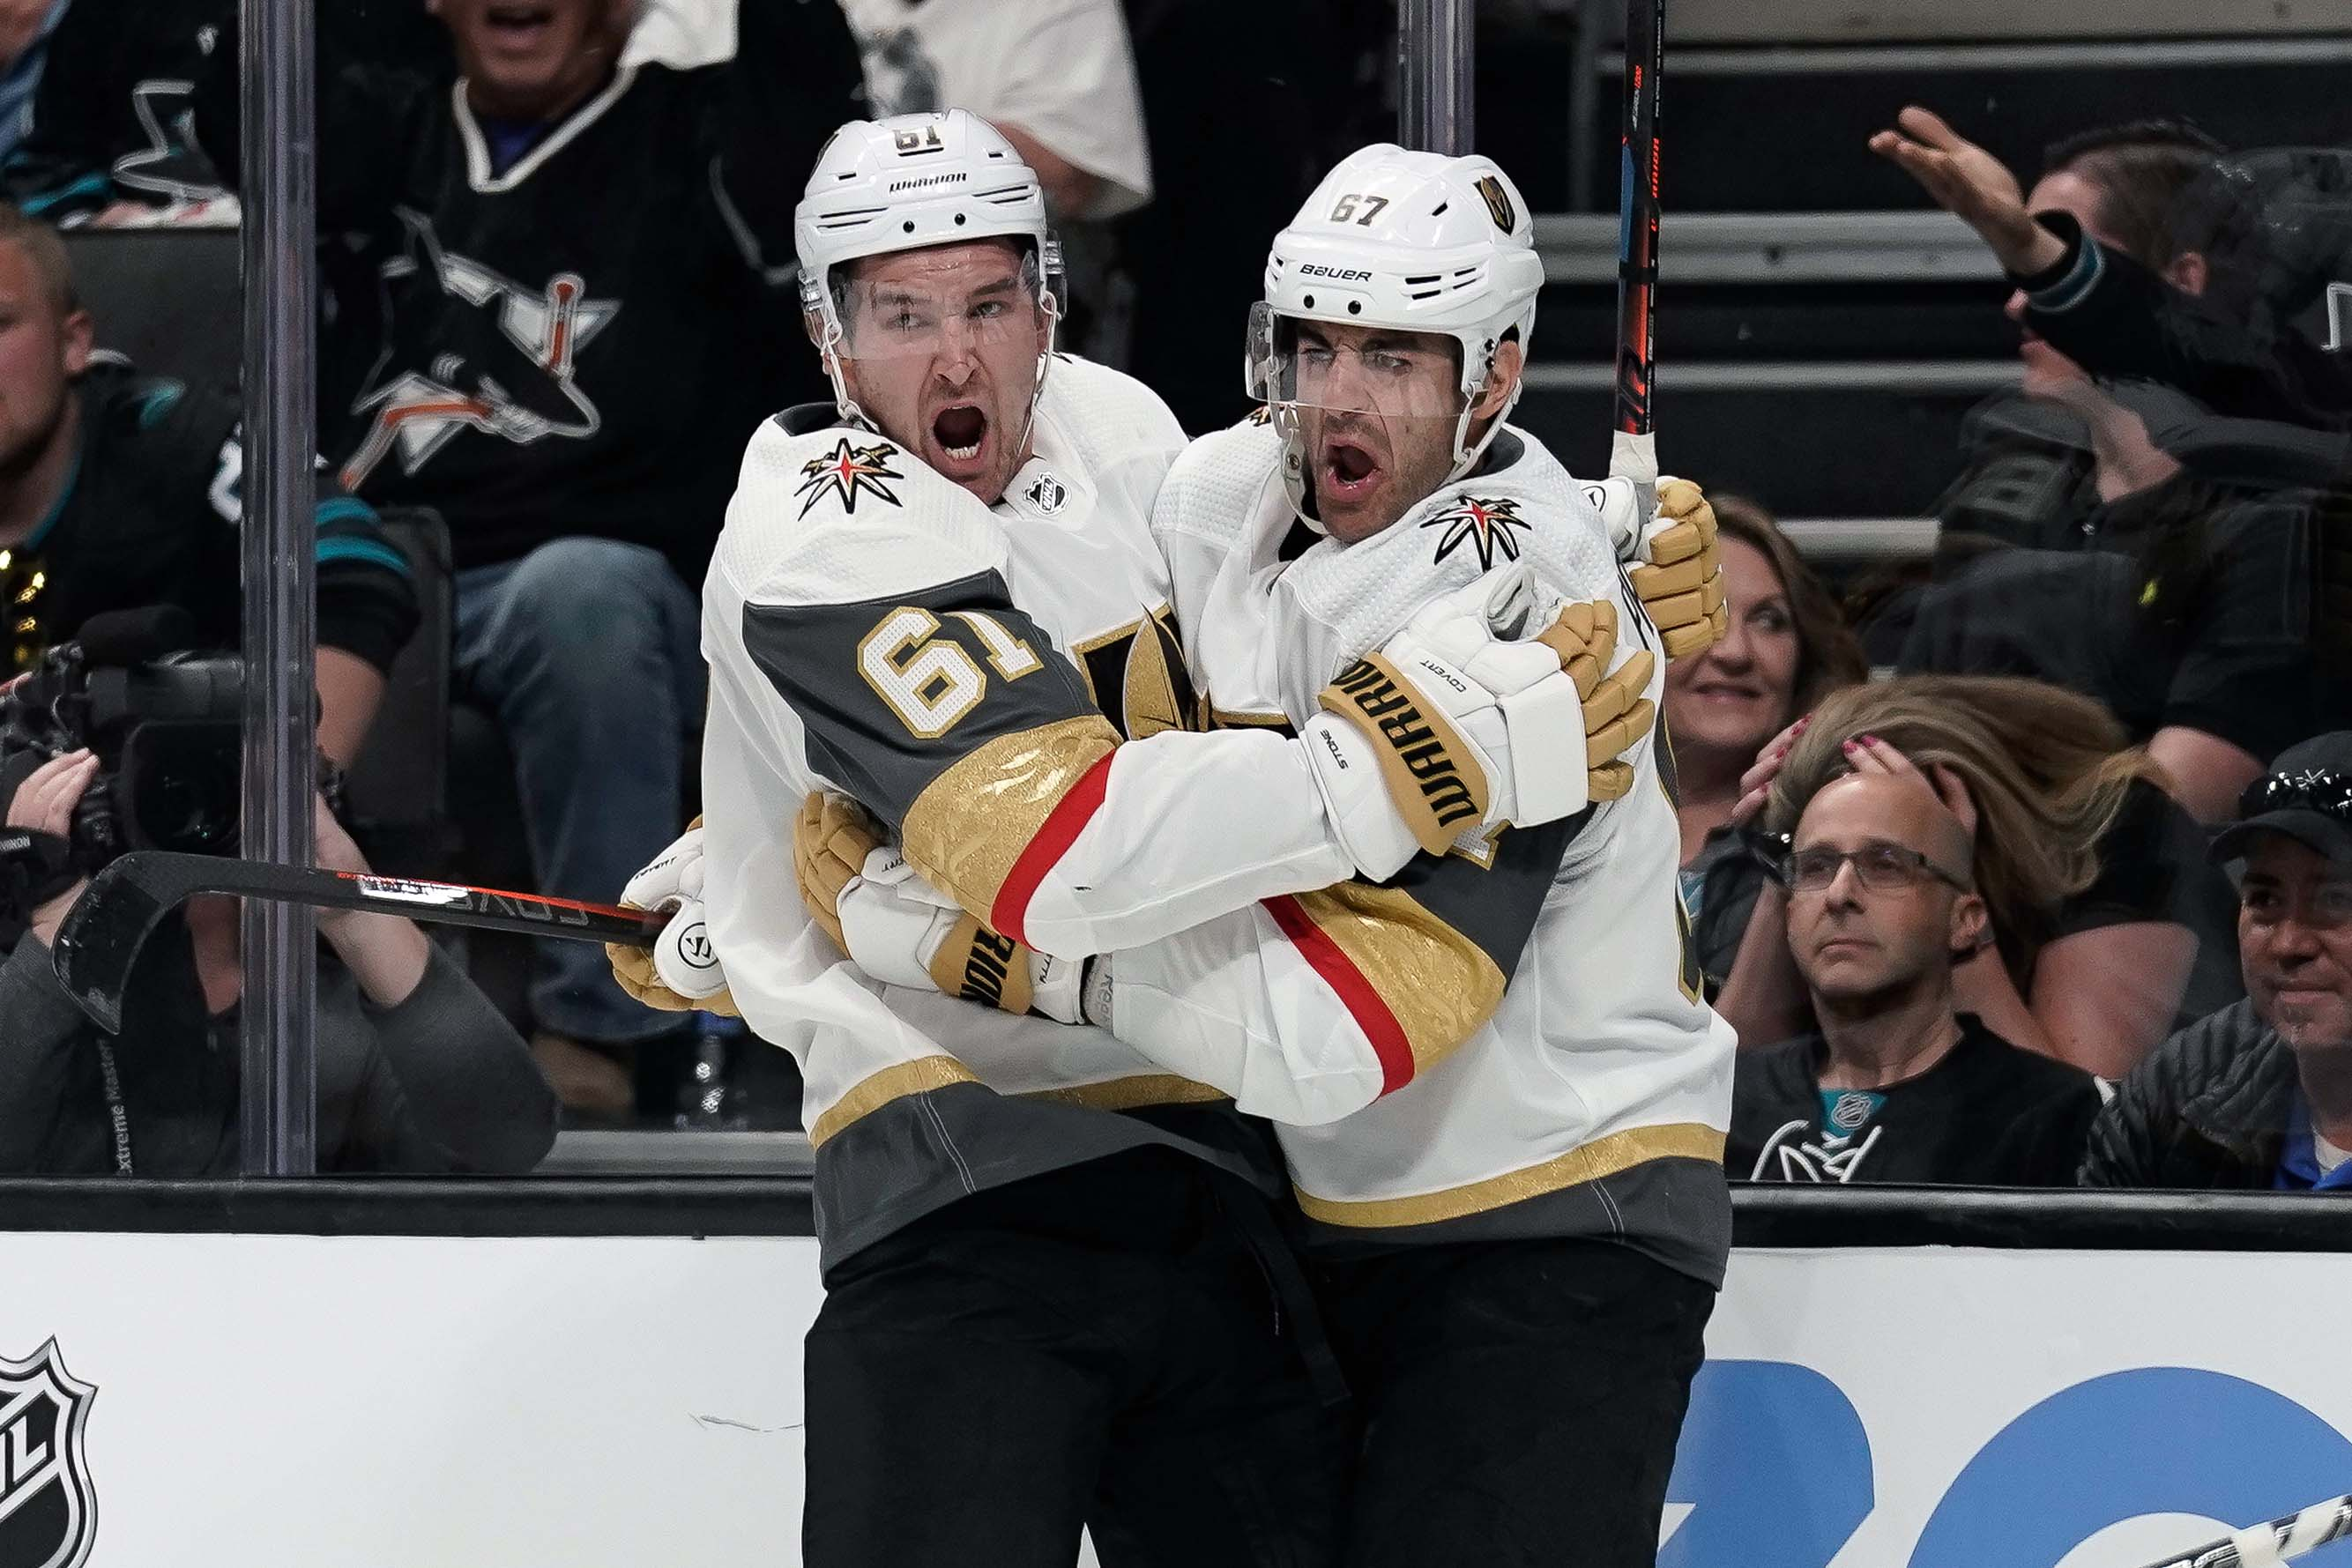 Golden Knights vs. Sharks odds 2019: Vegas seeks series win as Thursday underdog